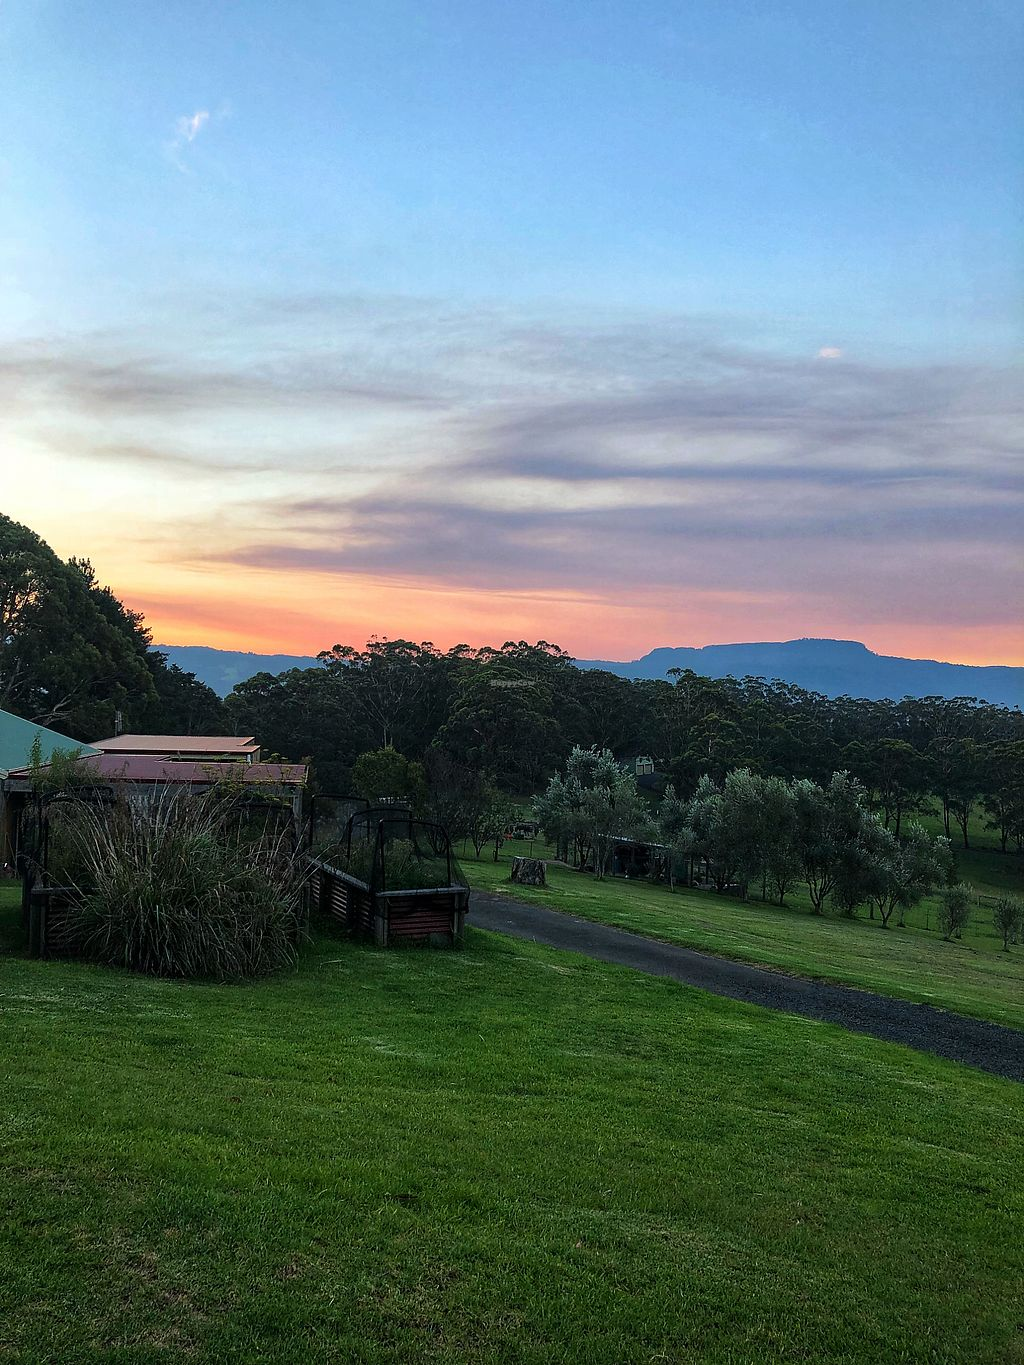 """Photo of Back 2 Earth B&B  by <a href=""""/members/profile/JennyHammond"""">JennyHammond</a> <br/>Glorious sunset  <br/> March 4, 2018  - <a href='/contact/abuse/image/96289/366421'>Report</a>"""